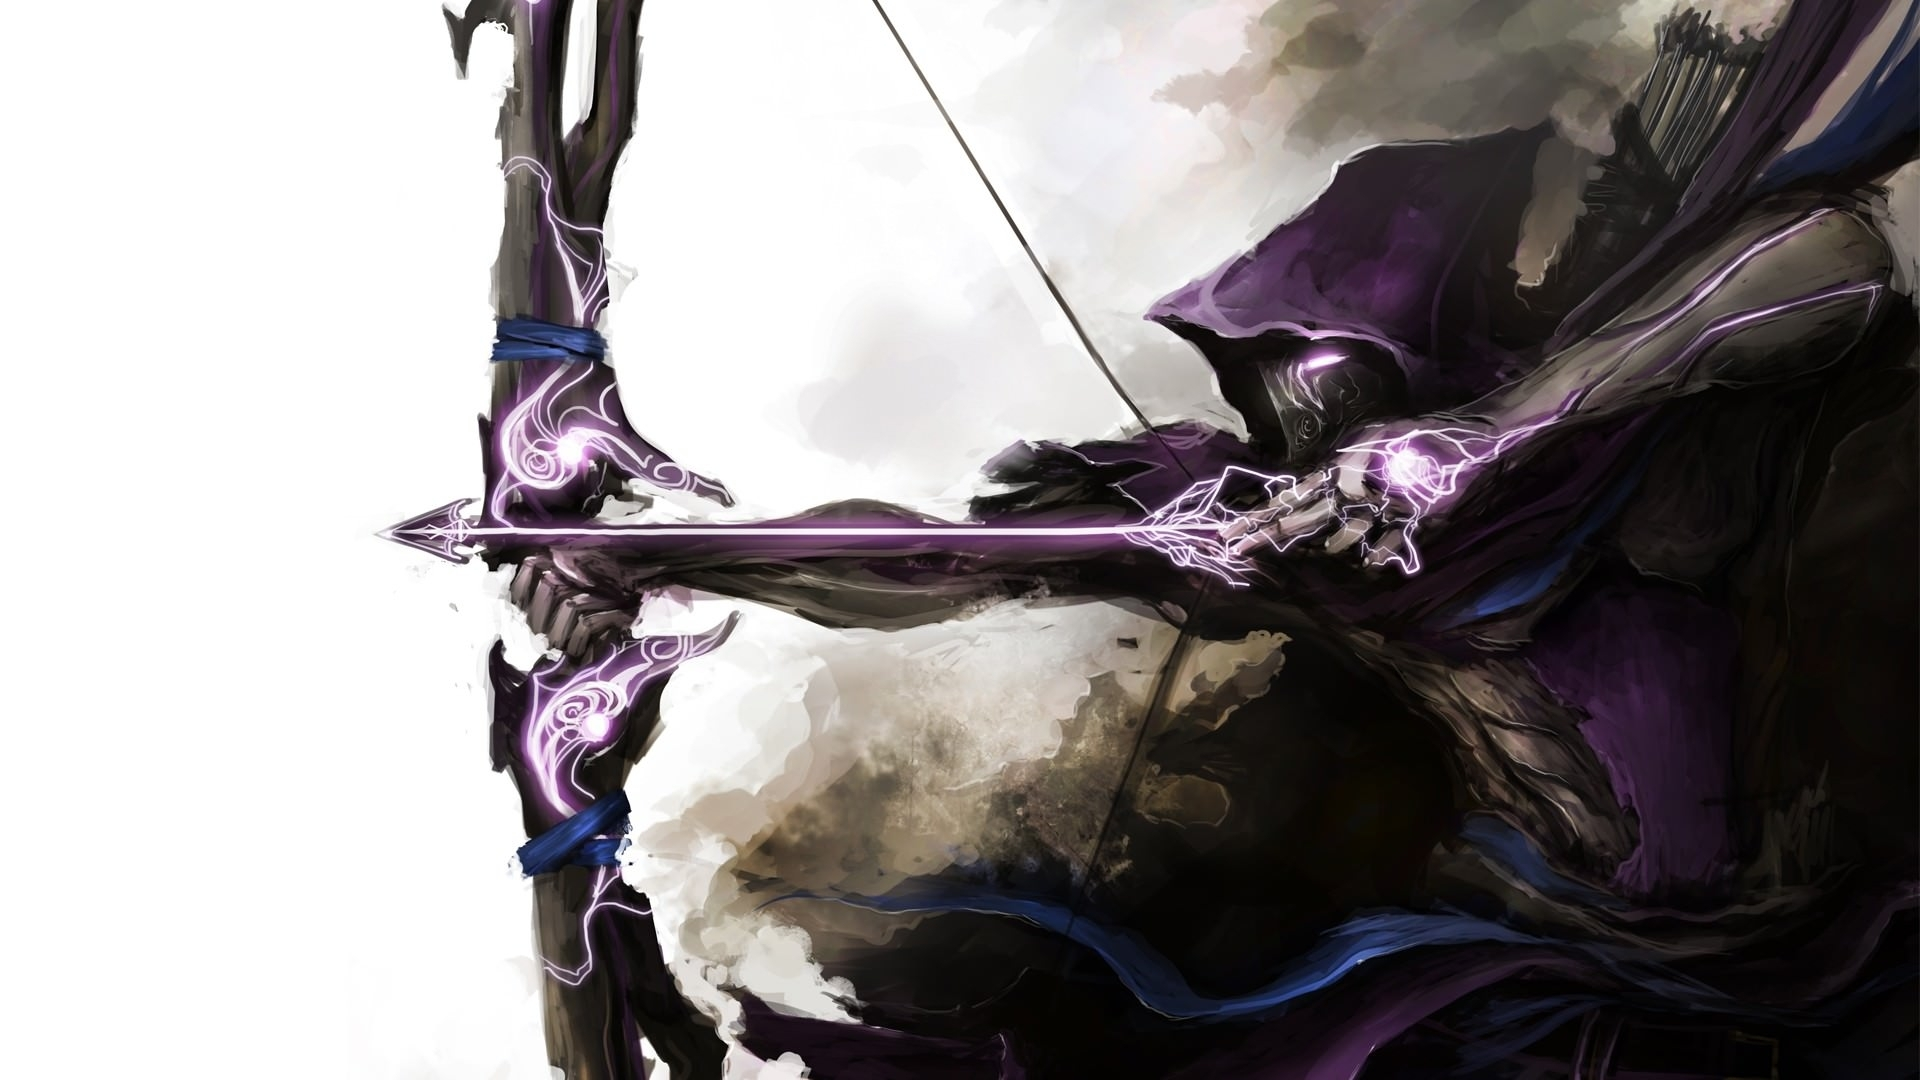 10 Most Popular Bow And Arrow Wallpapers FULL HD 1920×1080 For PC Desktop